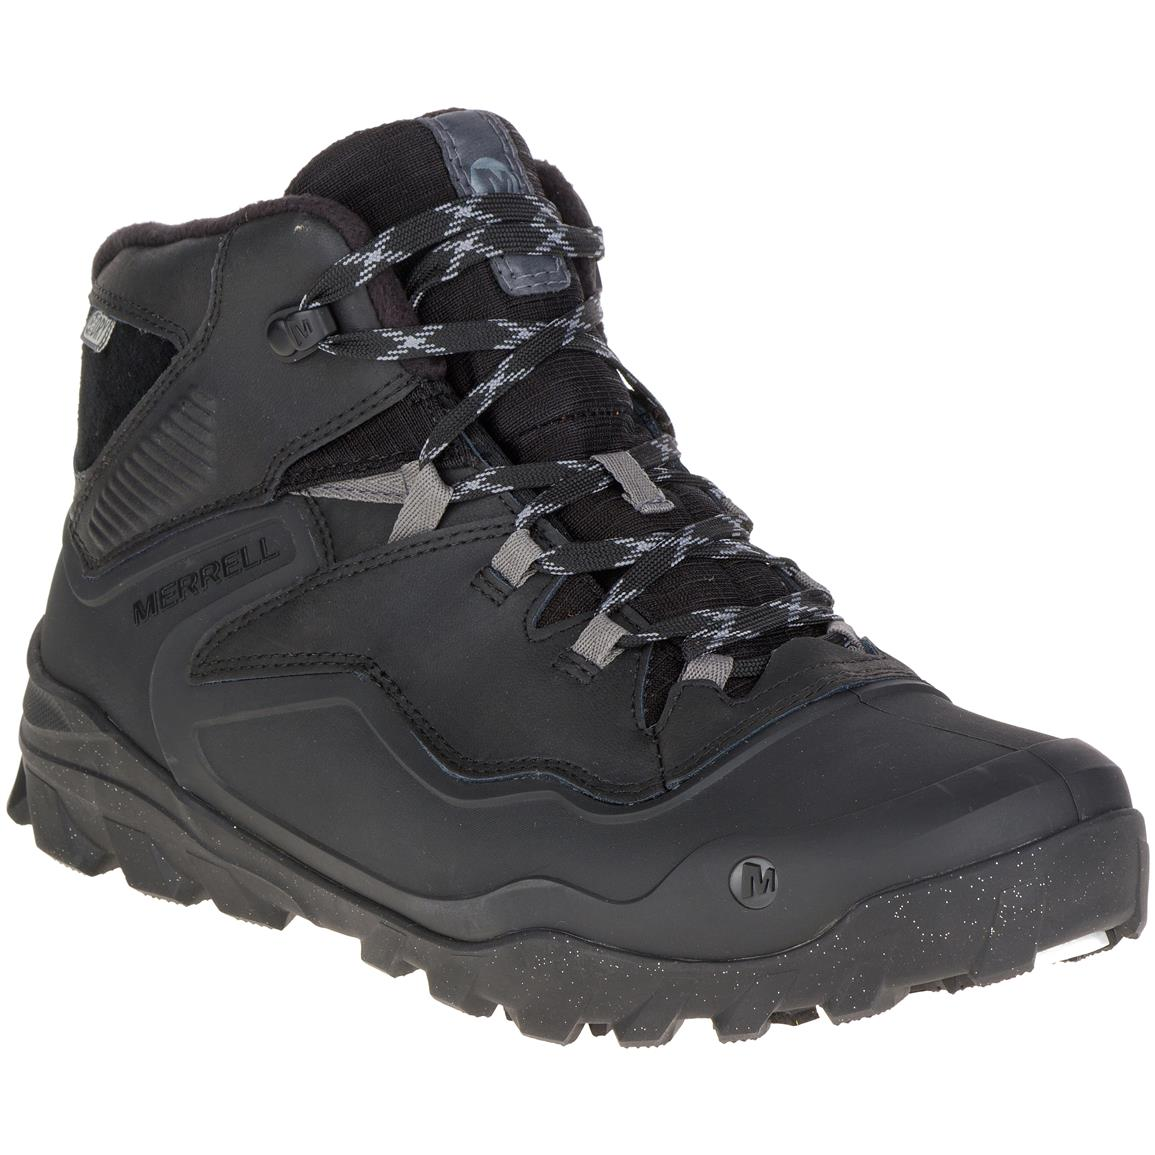 Merrell Men's Overlook 6 Ice+Waterproof Hiking Boots, 200 Gram Insulation, Black